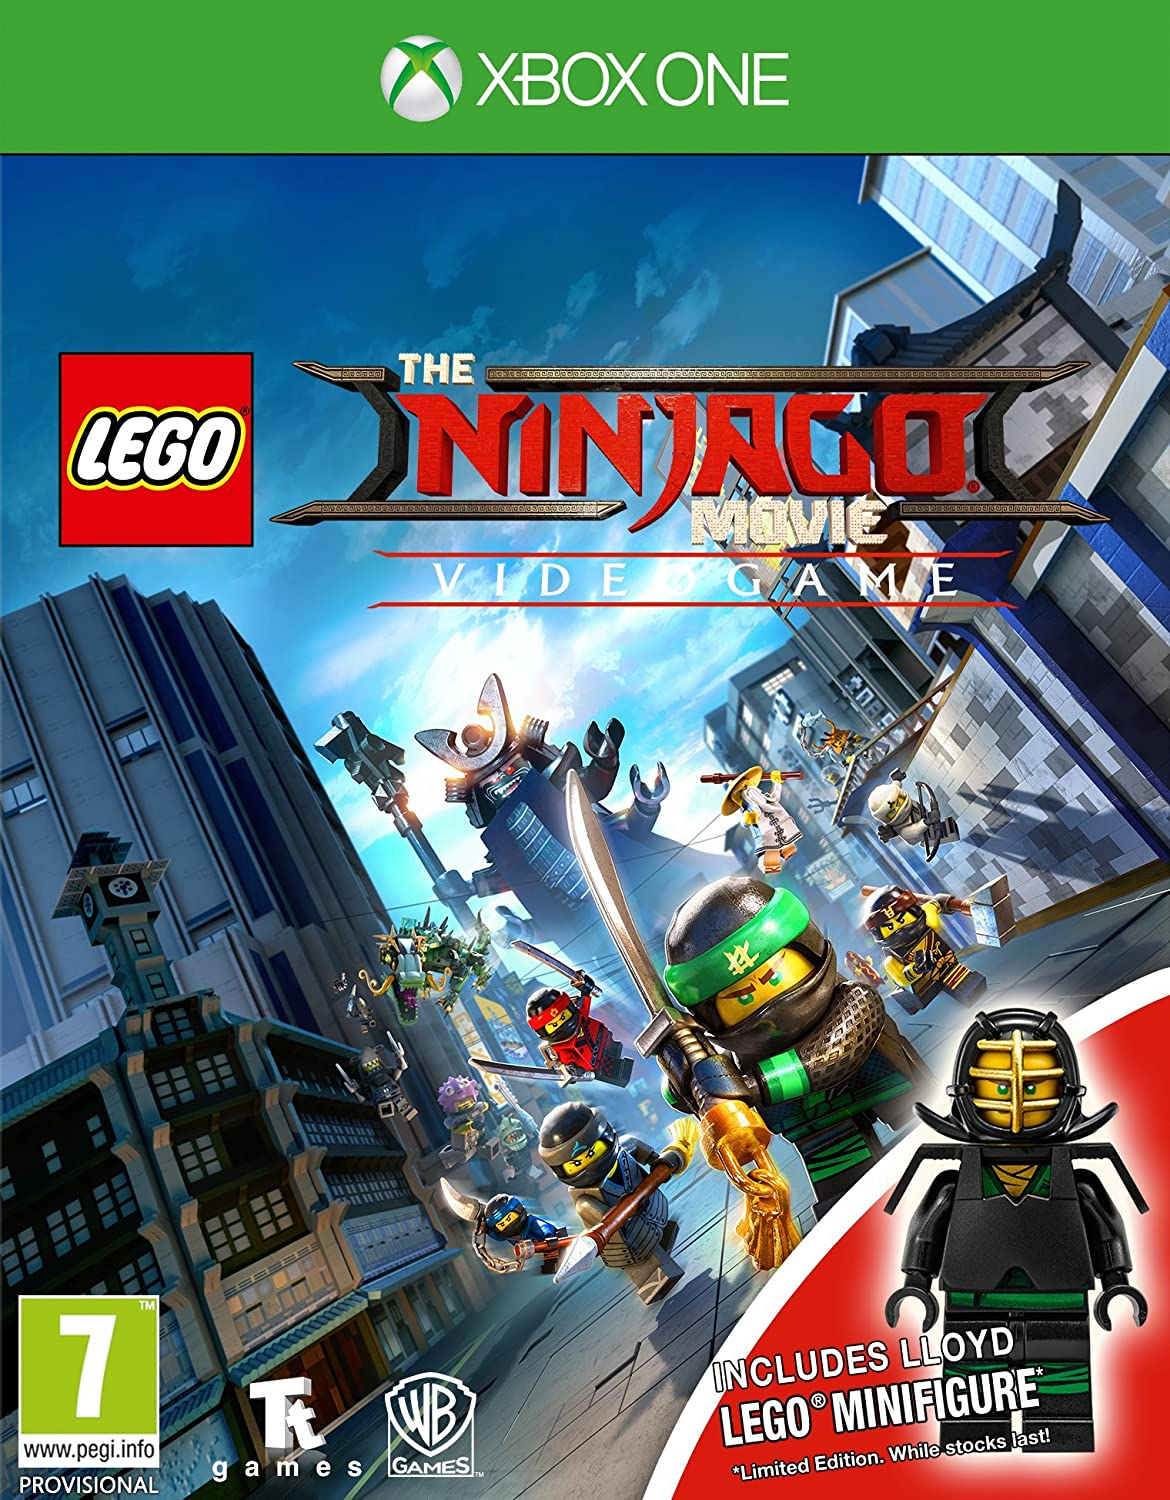 Lego The Ninjago Movie Videogame (Toy Edition) (Xbox One) (New): Amazon.es: Videojuegos